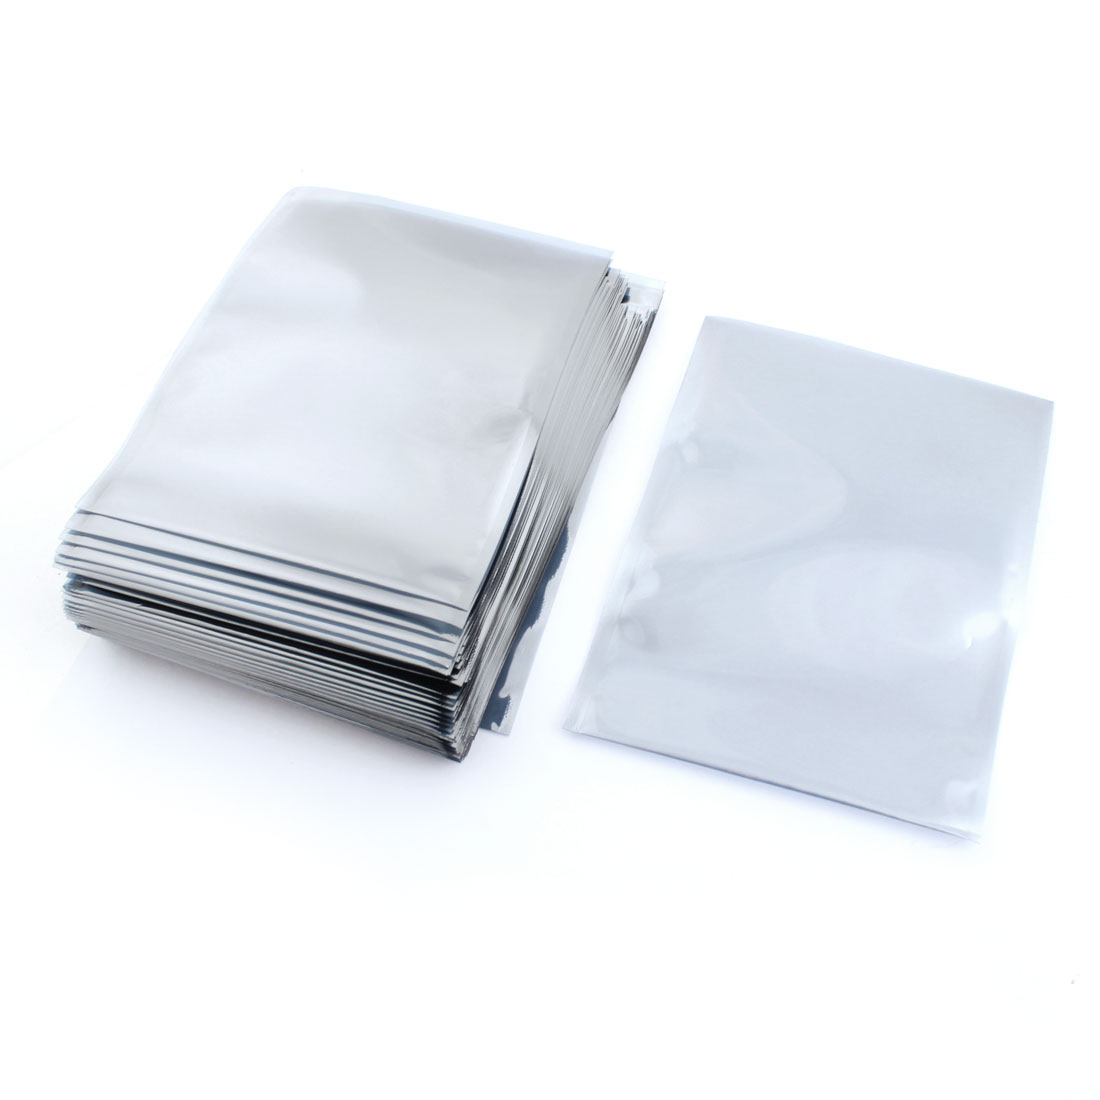 "100 Pcs 5"" x 6"" Anti Static Shielding Bags Holders Protectors"